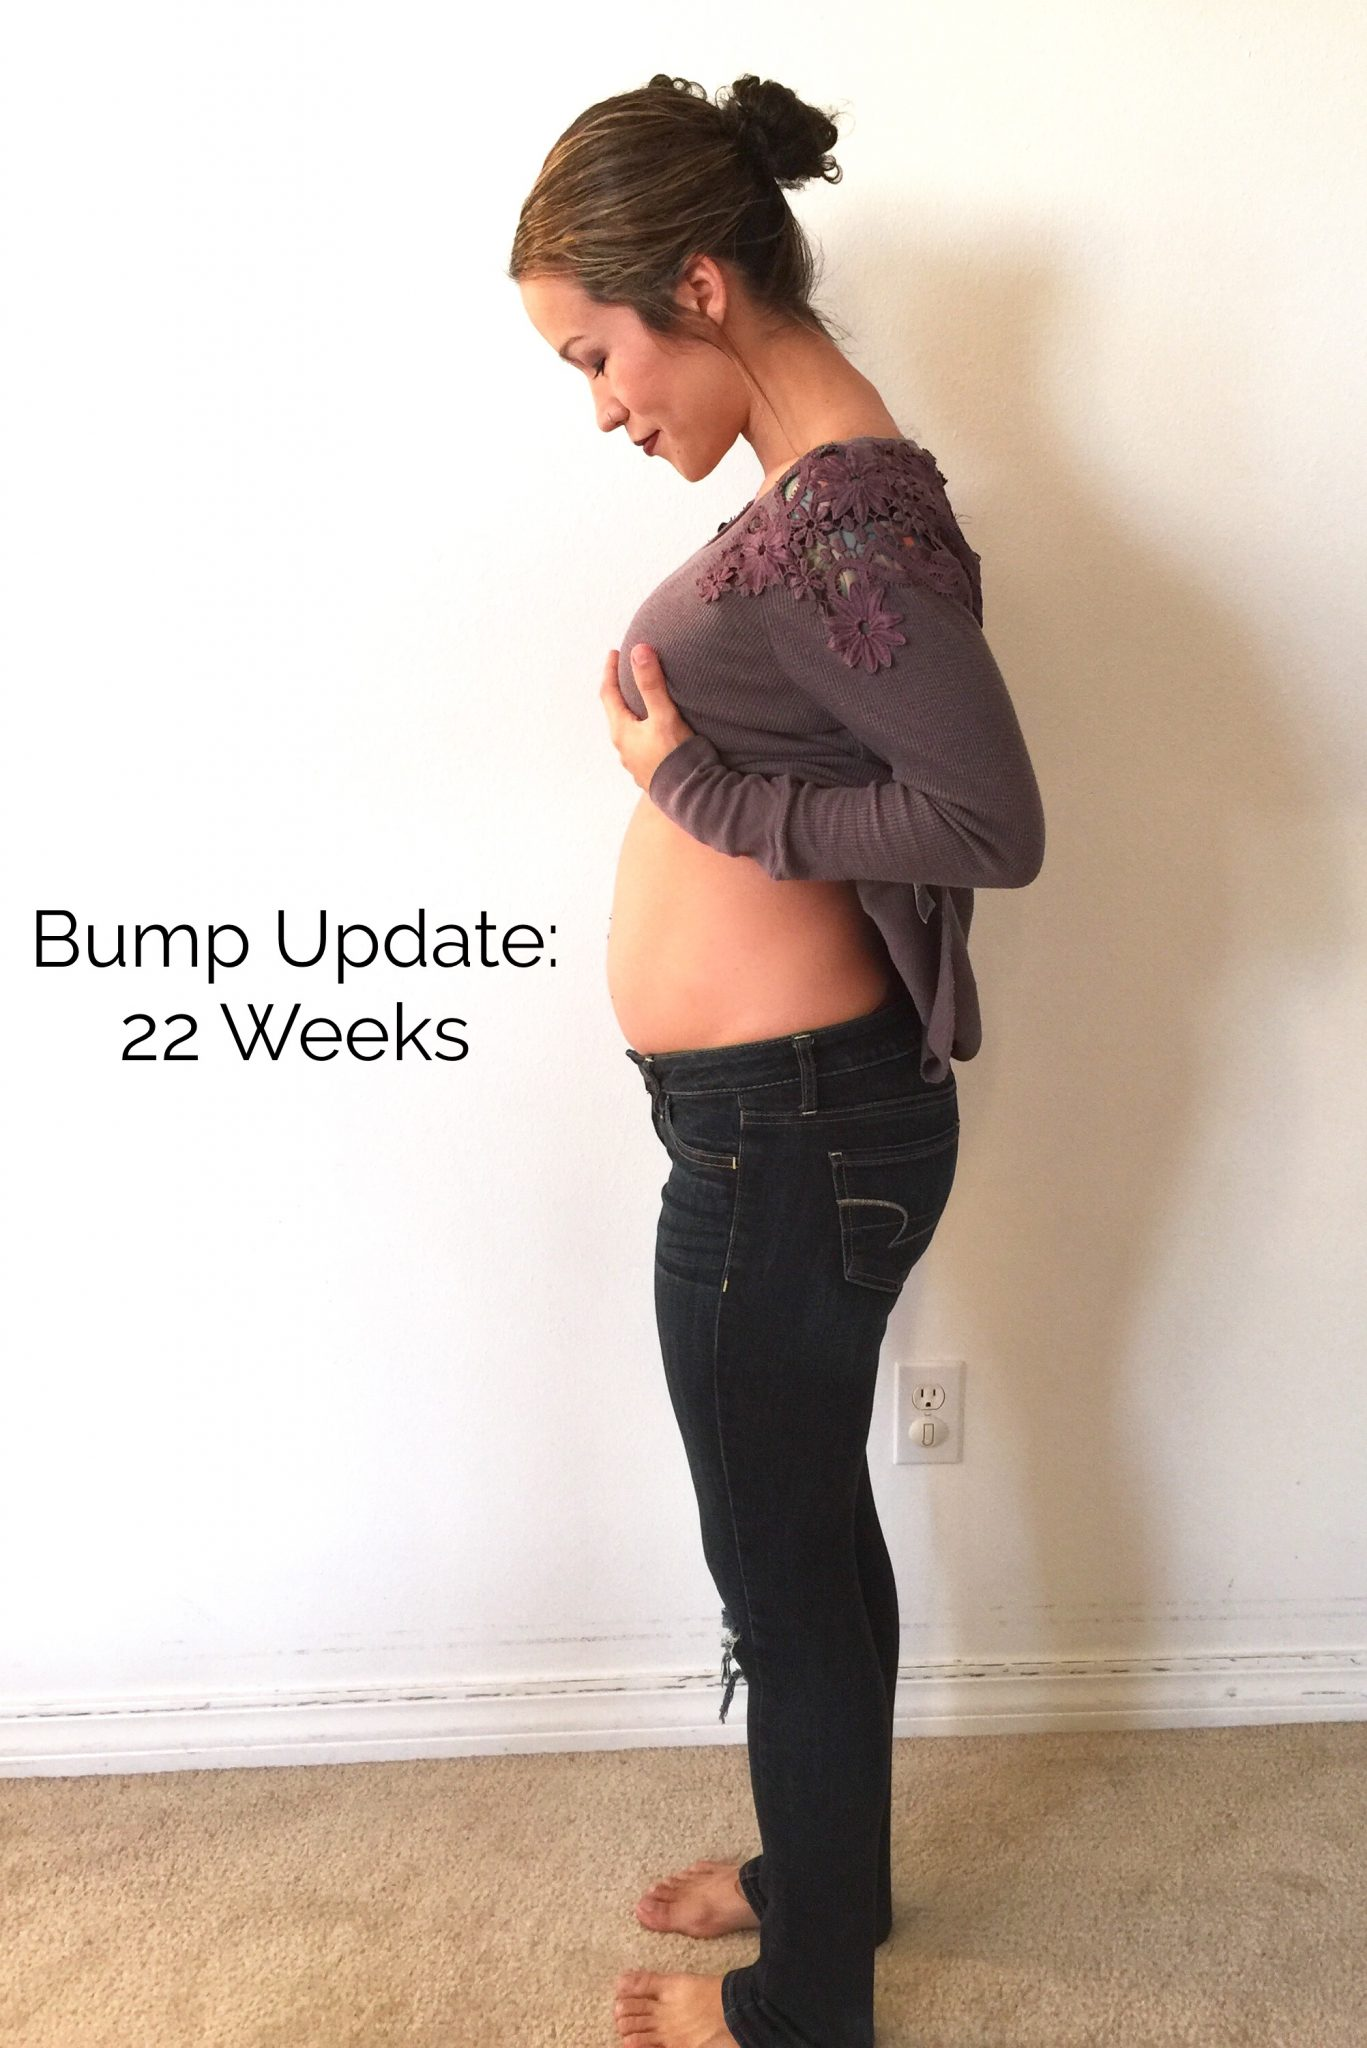 PREGNANCY: 22 Weeks Bump Update - Diary of a Fit Mommy22 Weeks Fetus Size Of Coconut